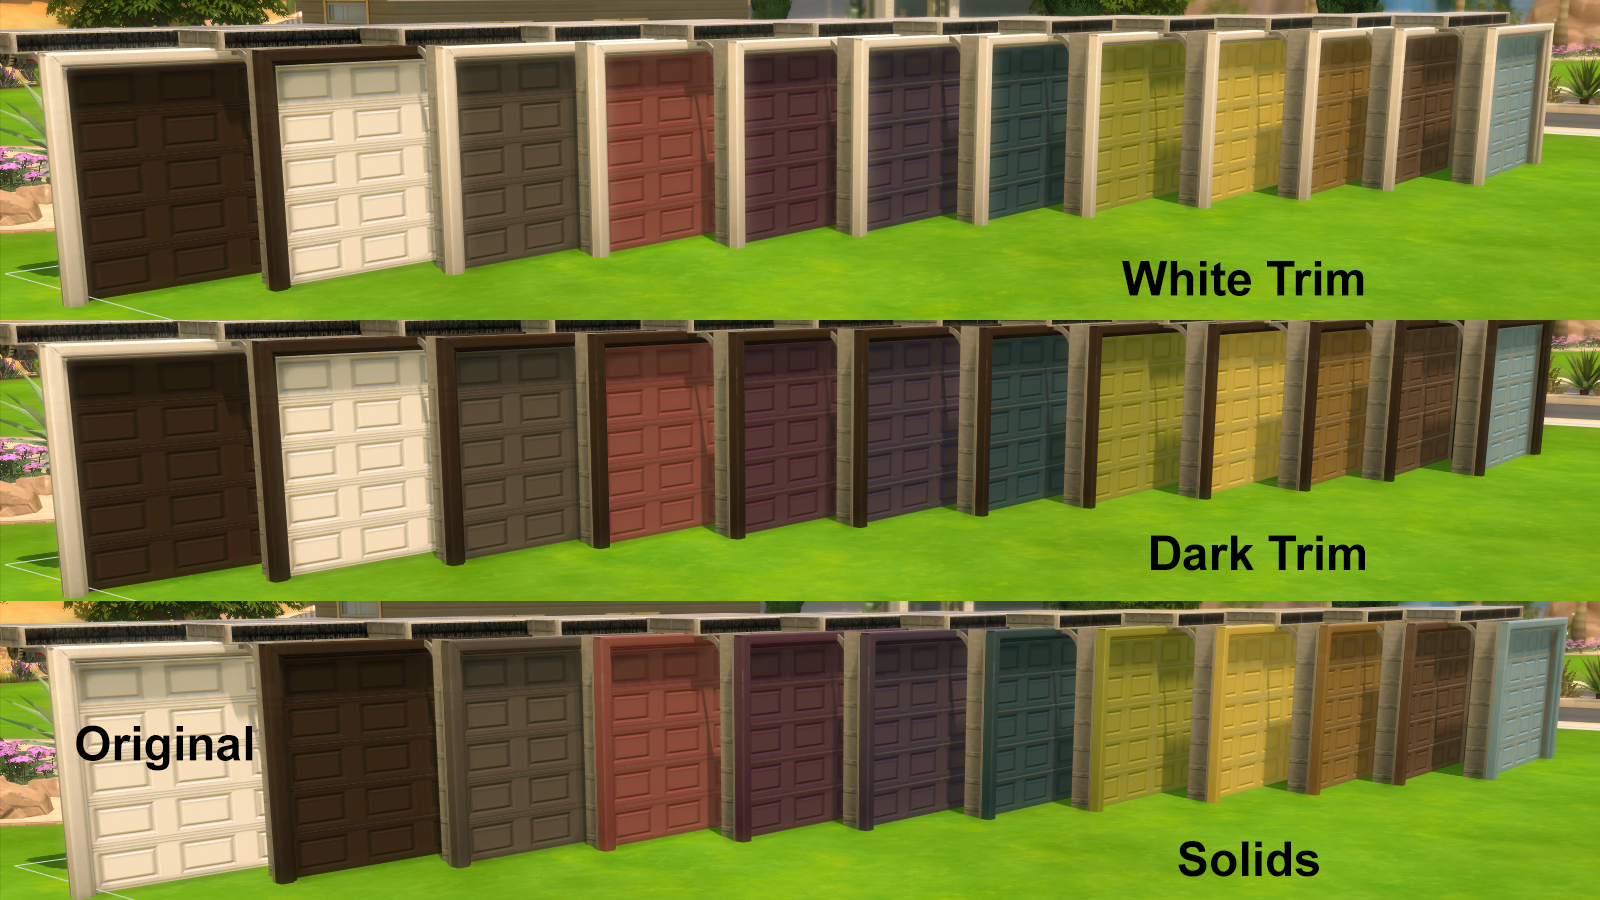 Pin by Aurélie on Sims 4 mode construction Sims, Sims 4